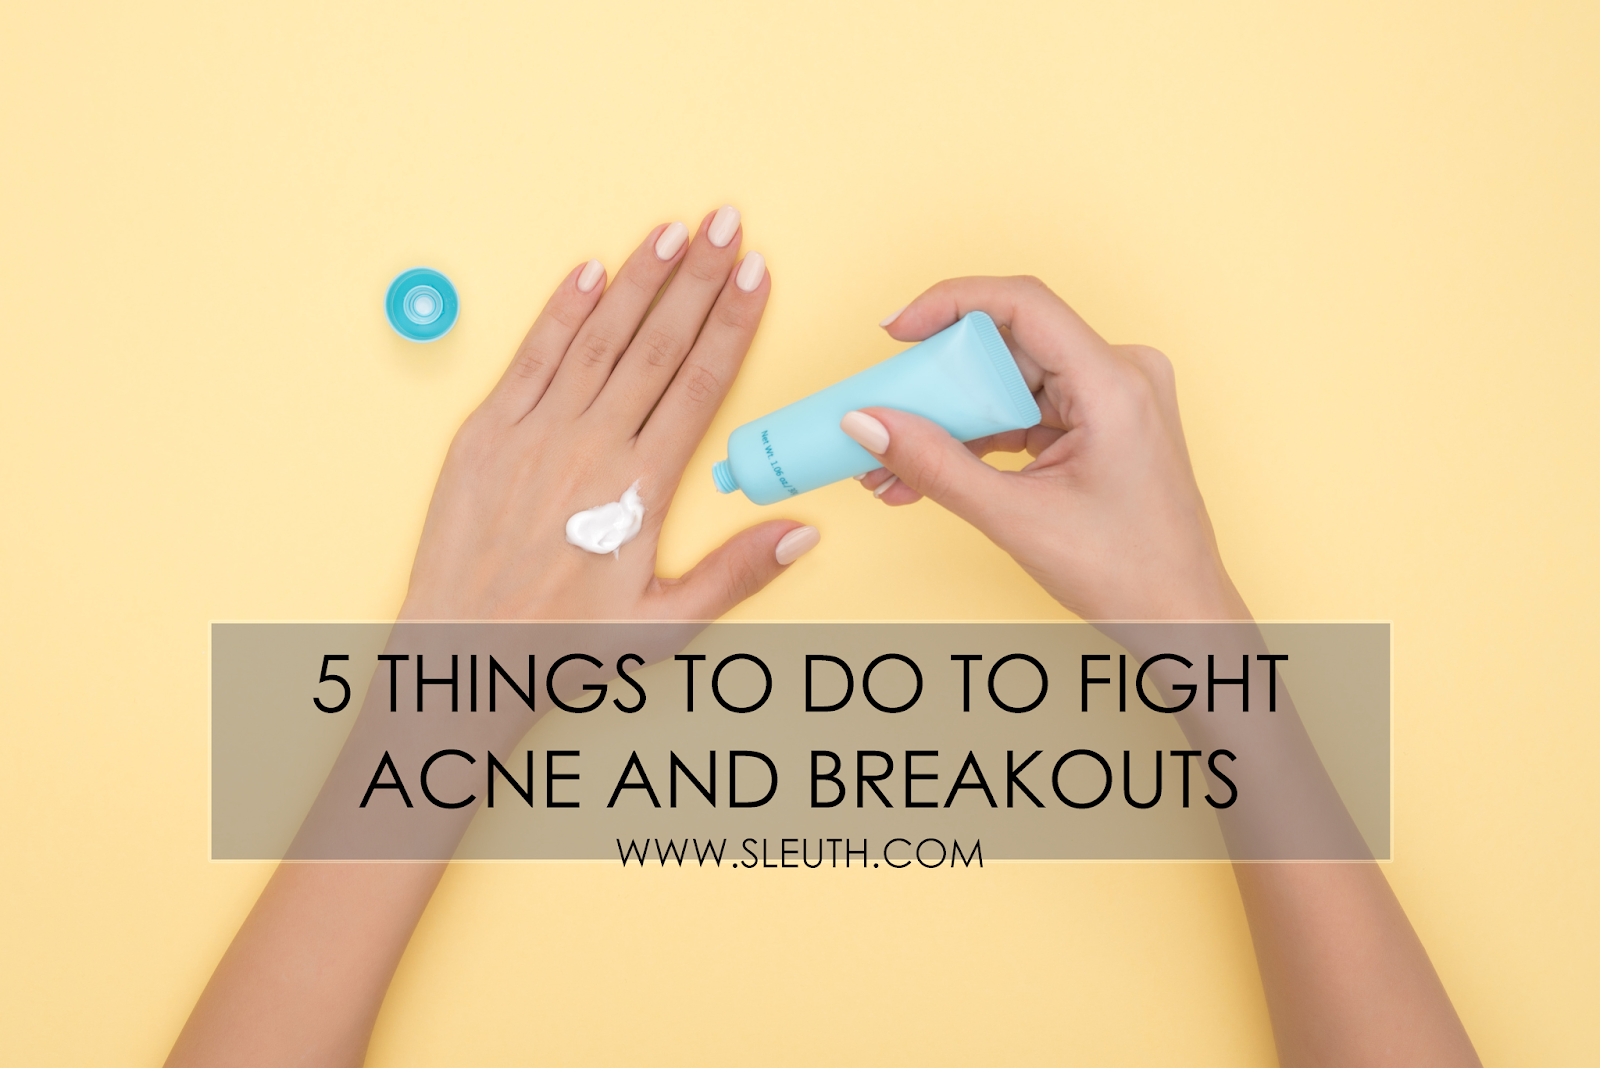 tips on how to prevent acne and breakouts